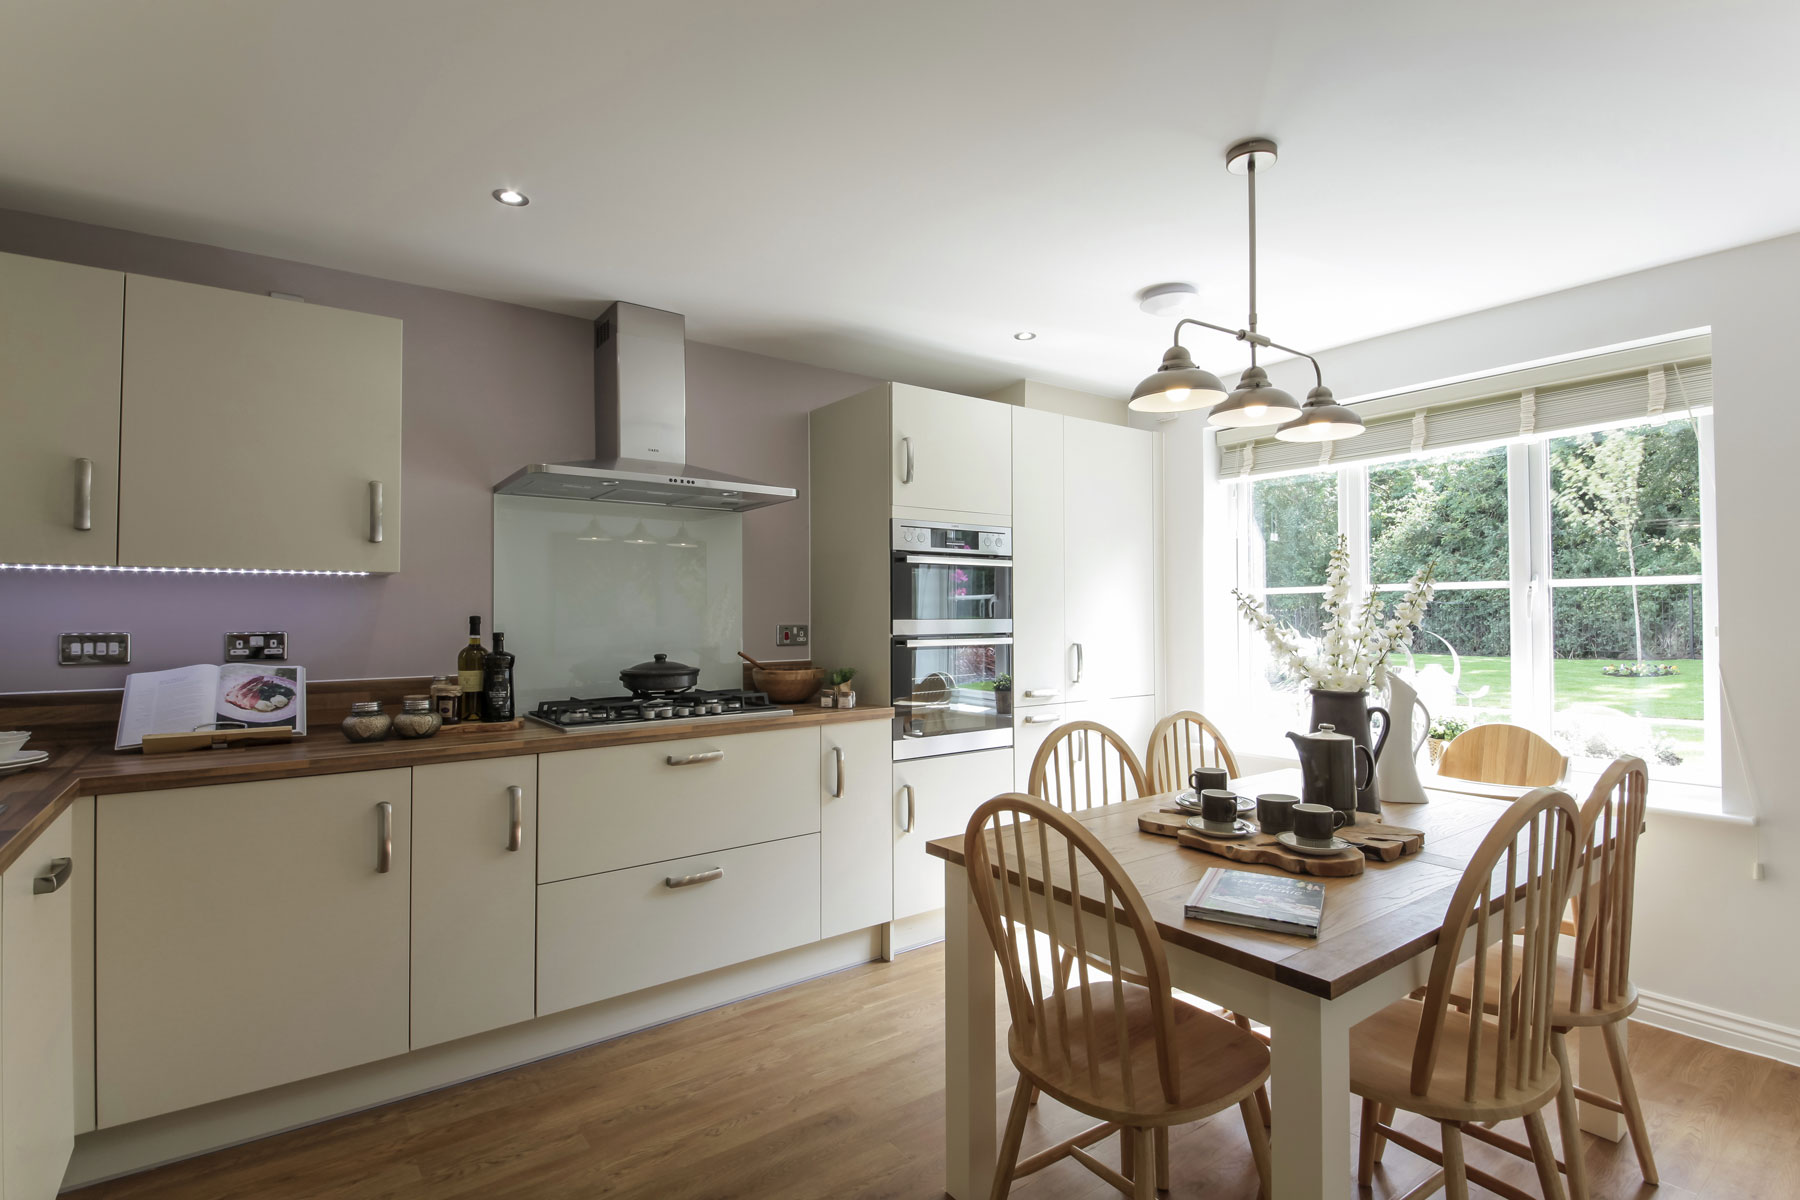 TW Exeter - Rackenford Meadow - Monkford example kitchen 2